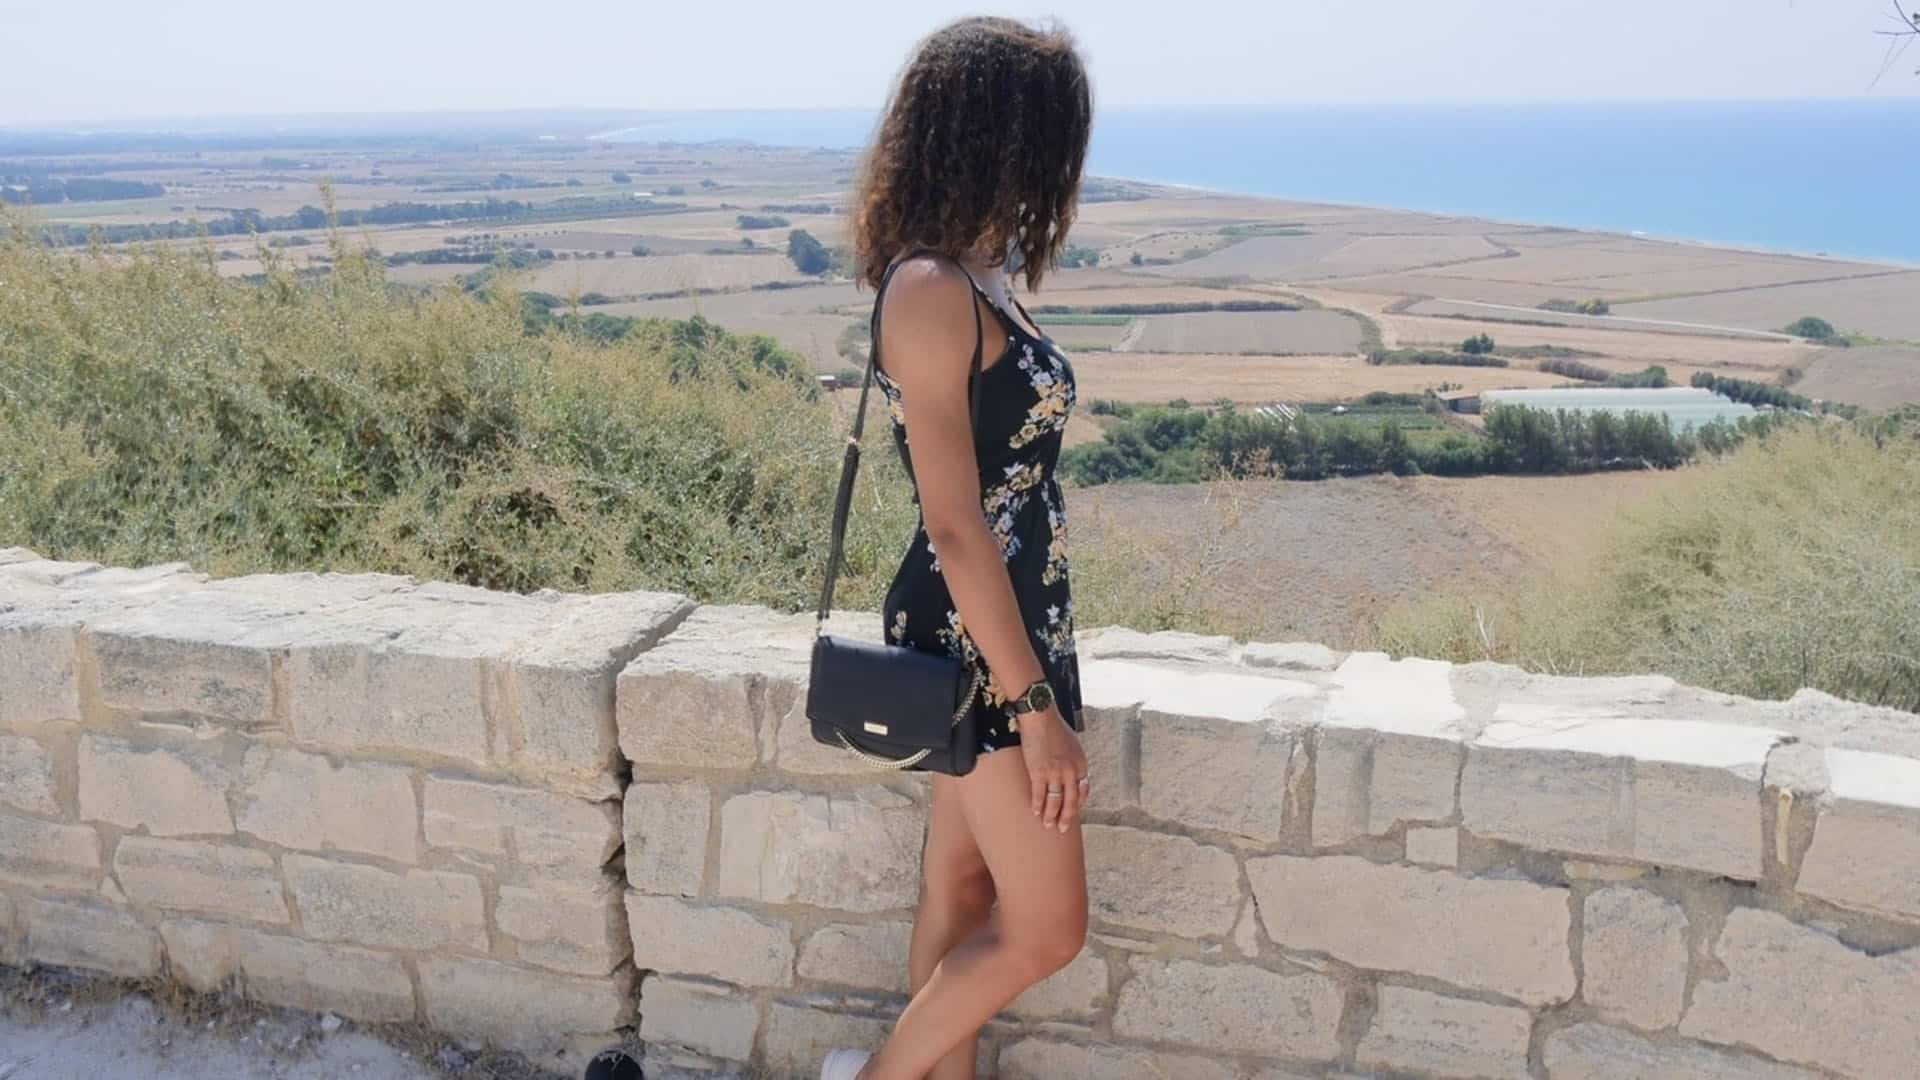 places in cyprus The view from Kourion